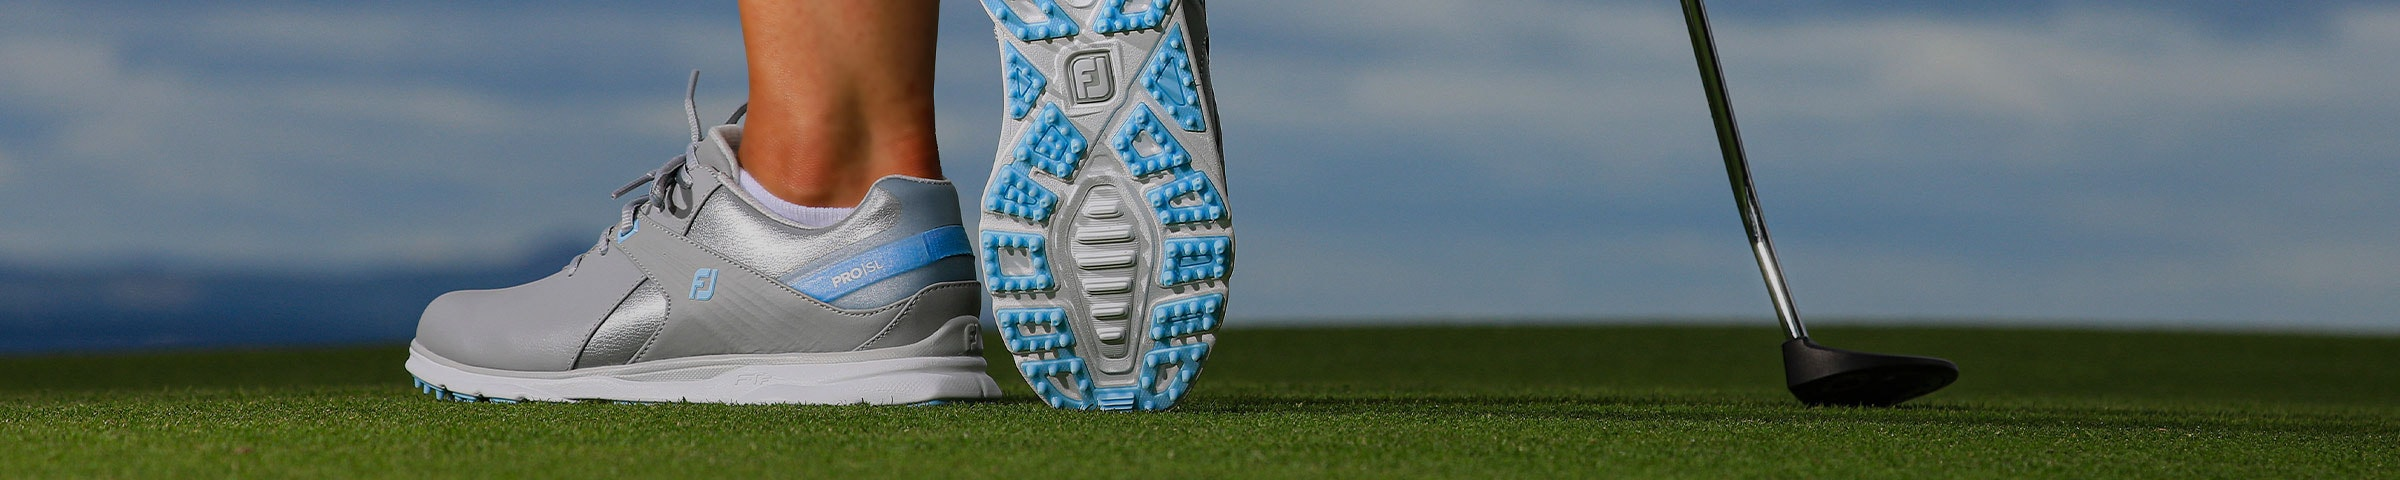 FootJoy Womens Spikeless Golf Shoes